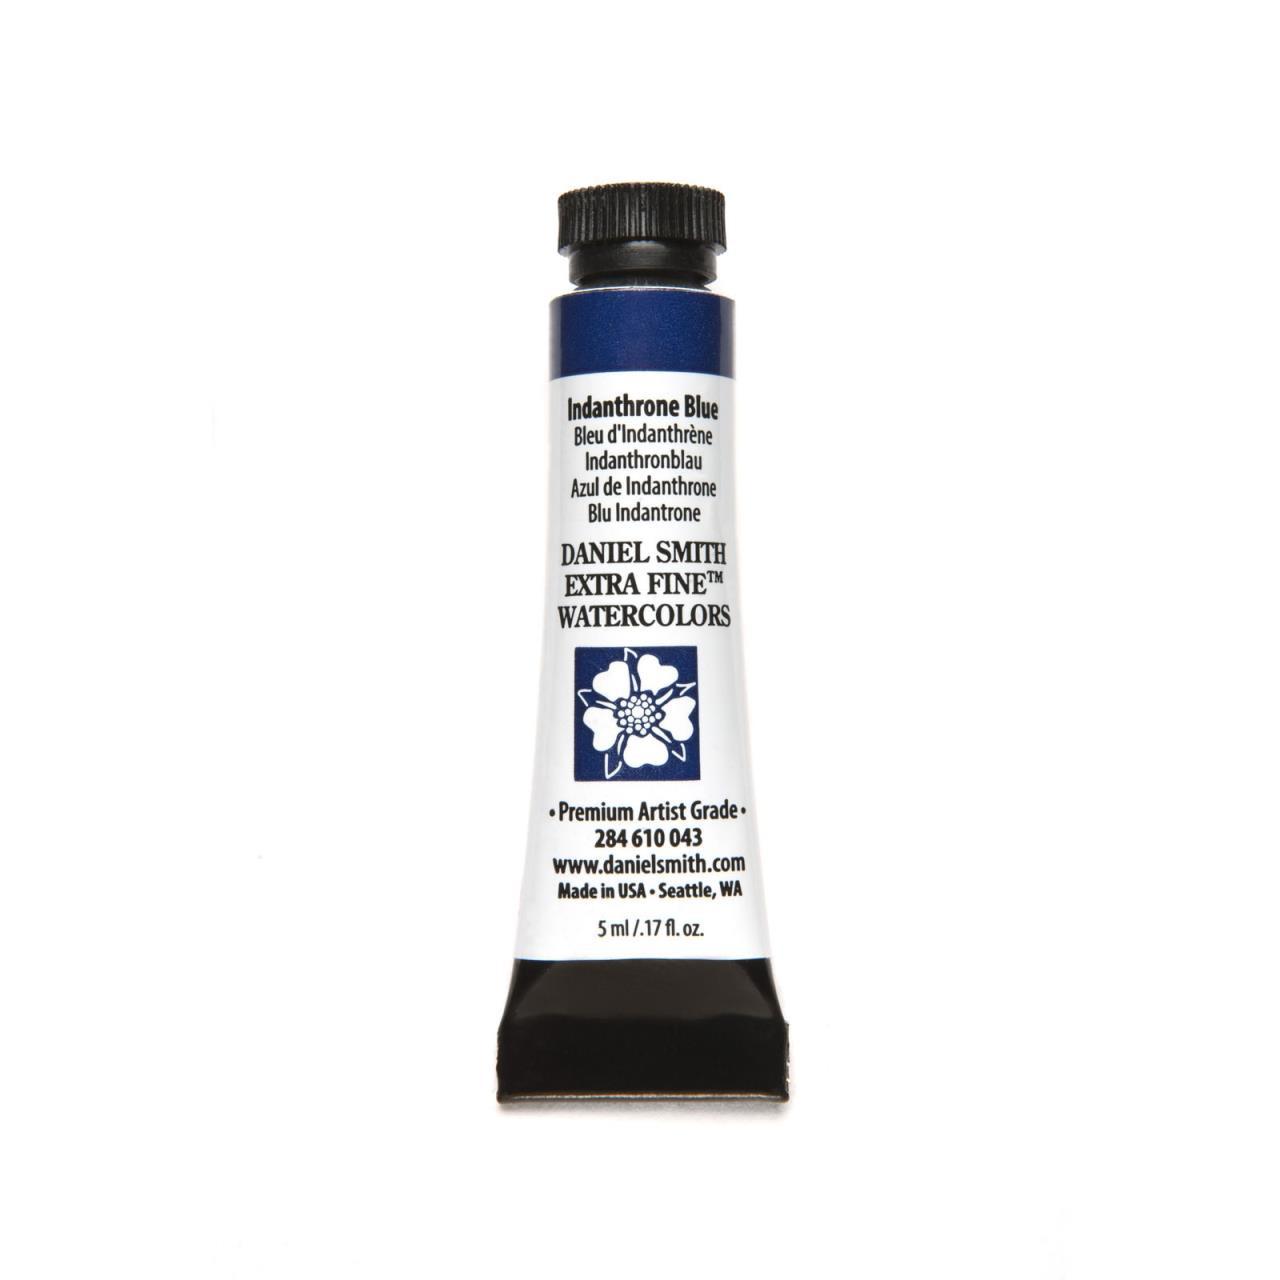 Indanthrone Blue, DANIEL SMITH Extra Fine Watercolors 5ml Tubes -